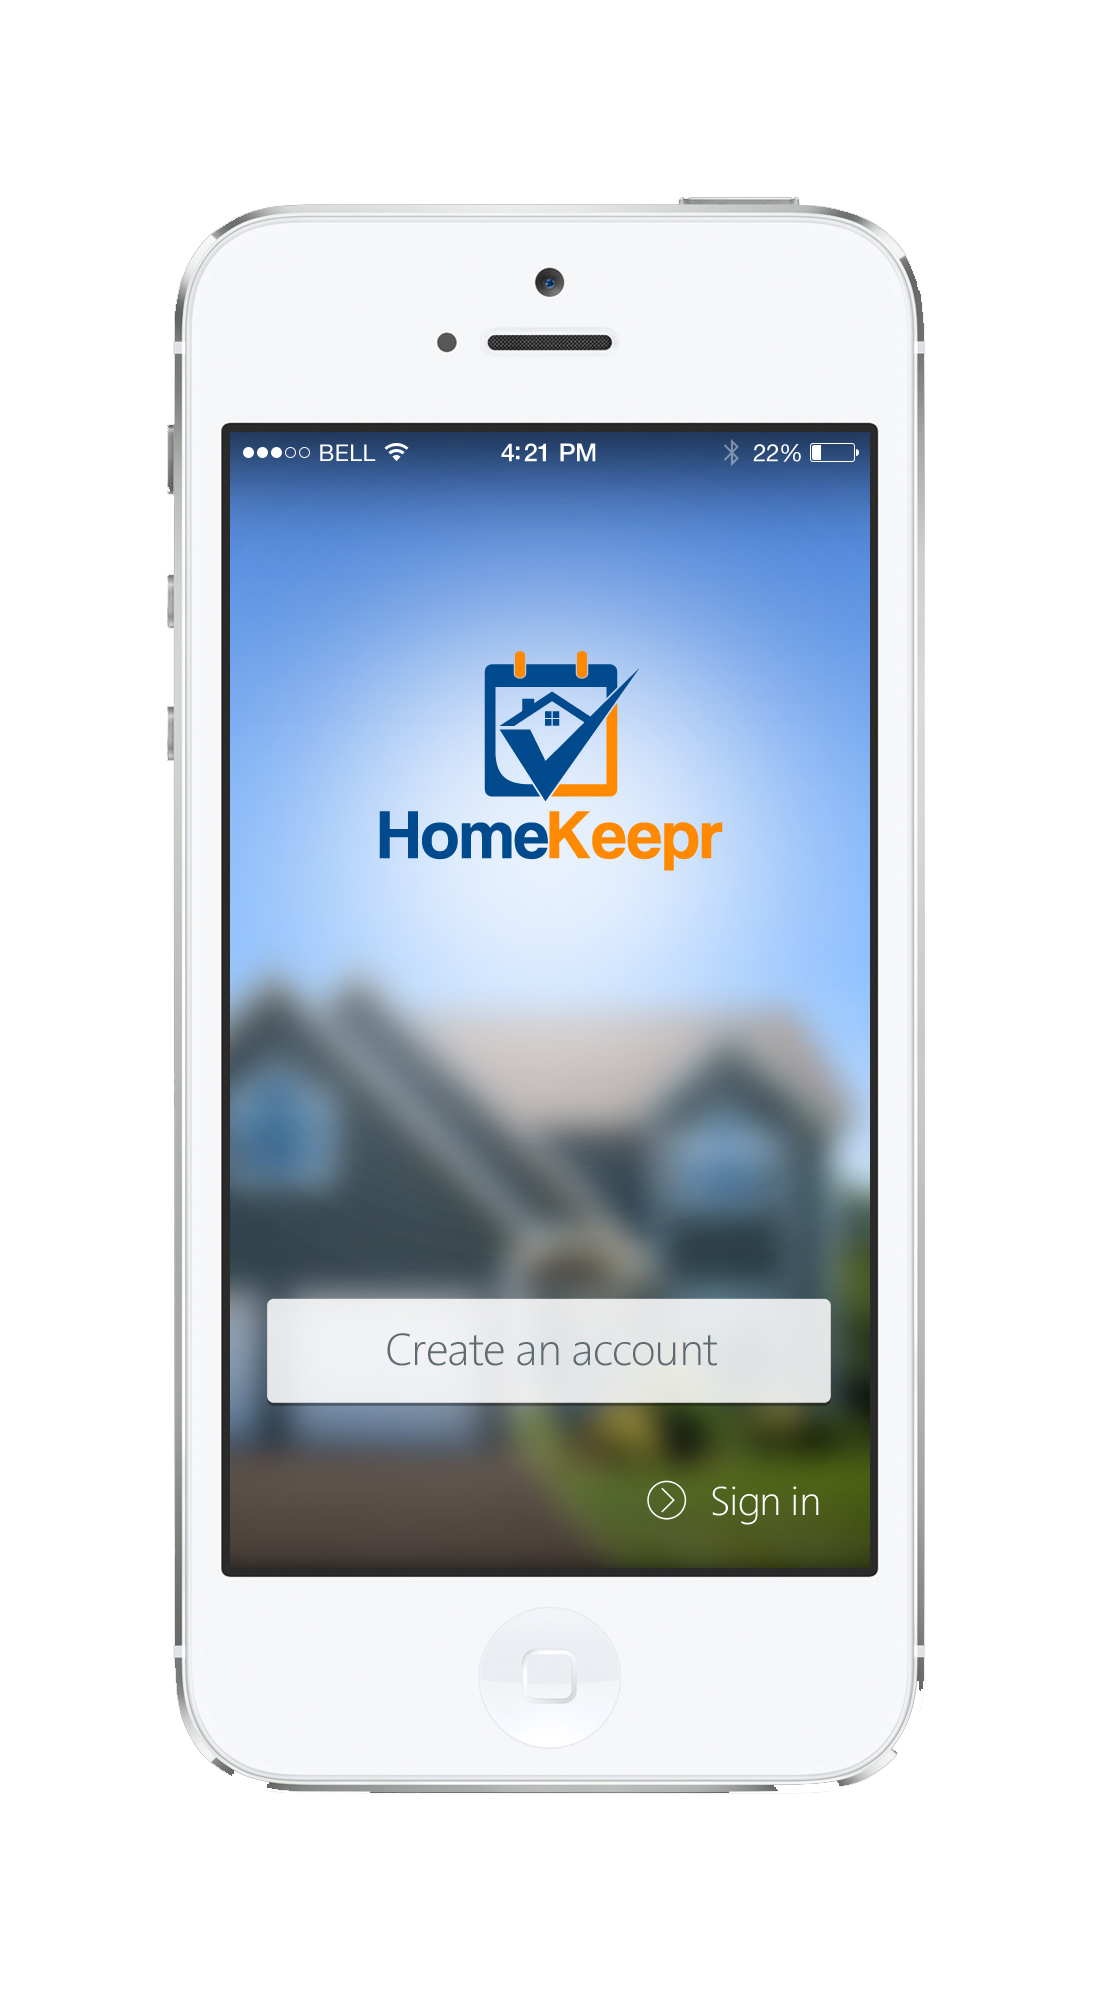 Your Home Keepr App